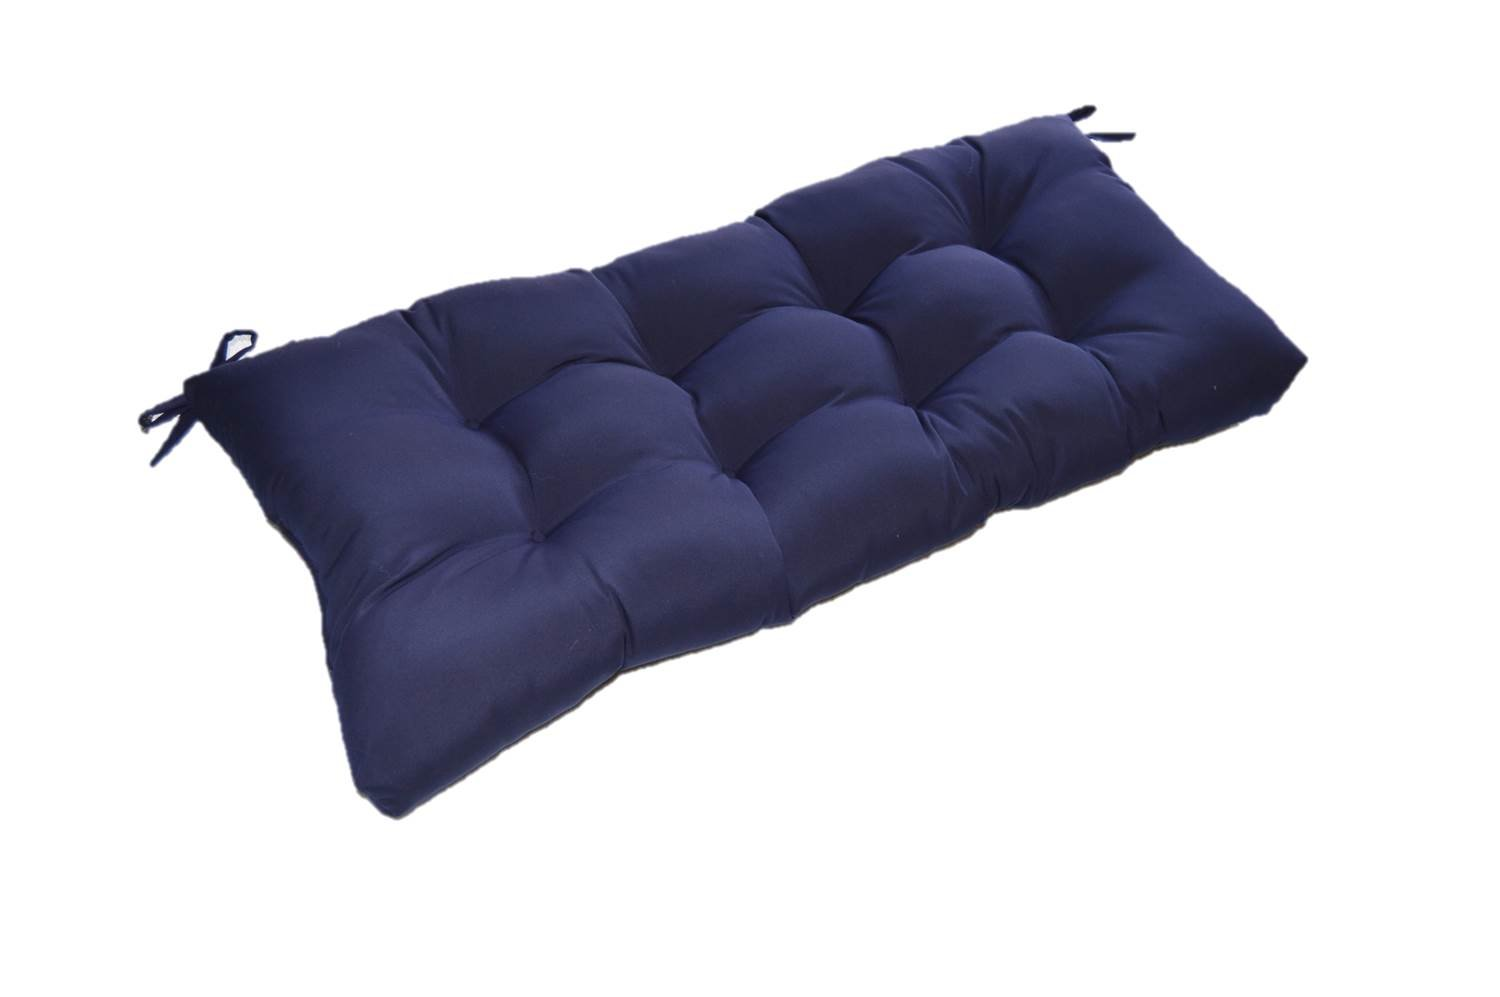 Solid Navy Blue Tufted Cushion for Bench, Swing, or Glider – Choose Select Size 60 x 18